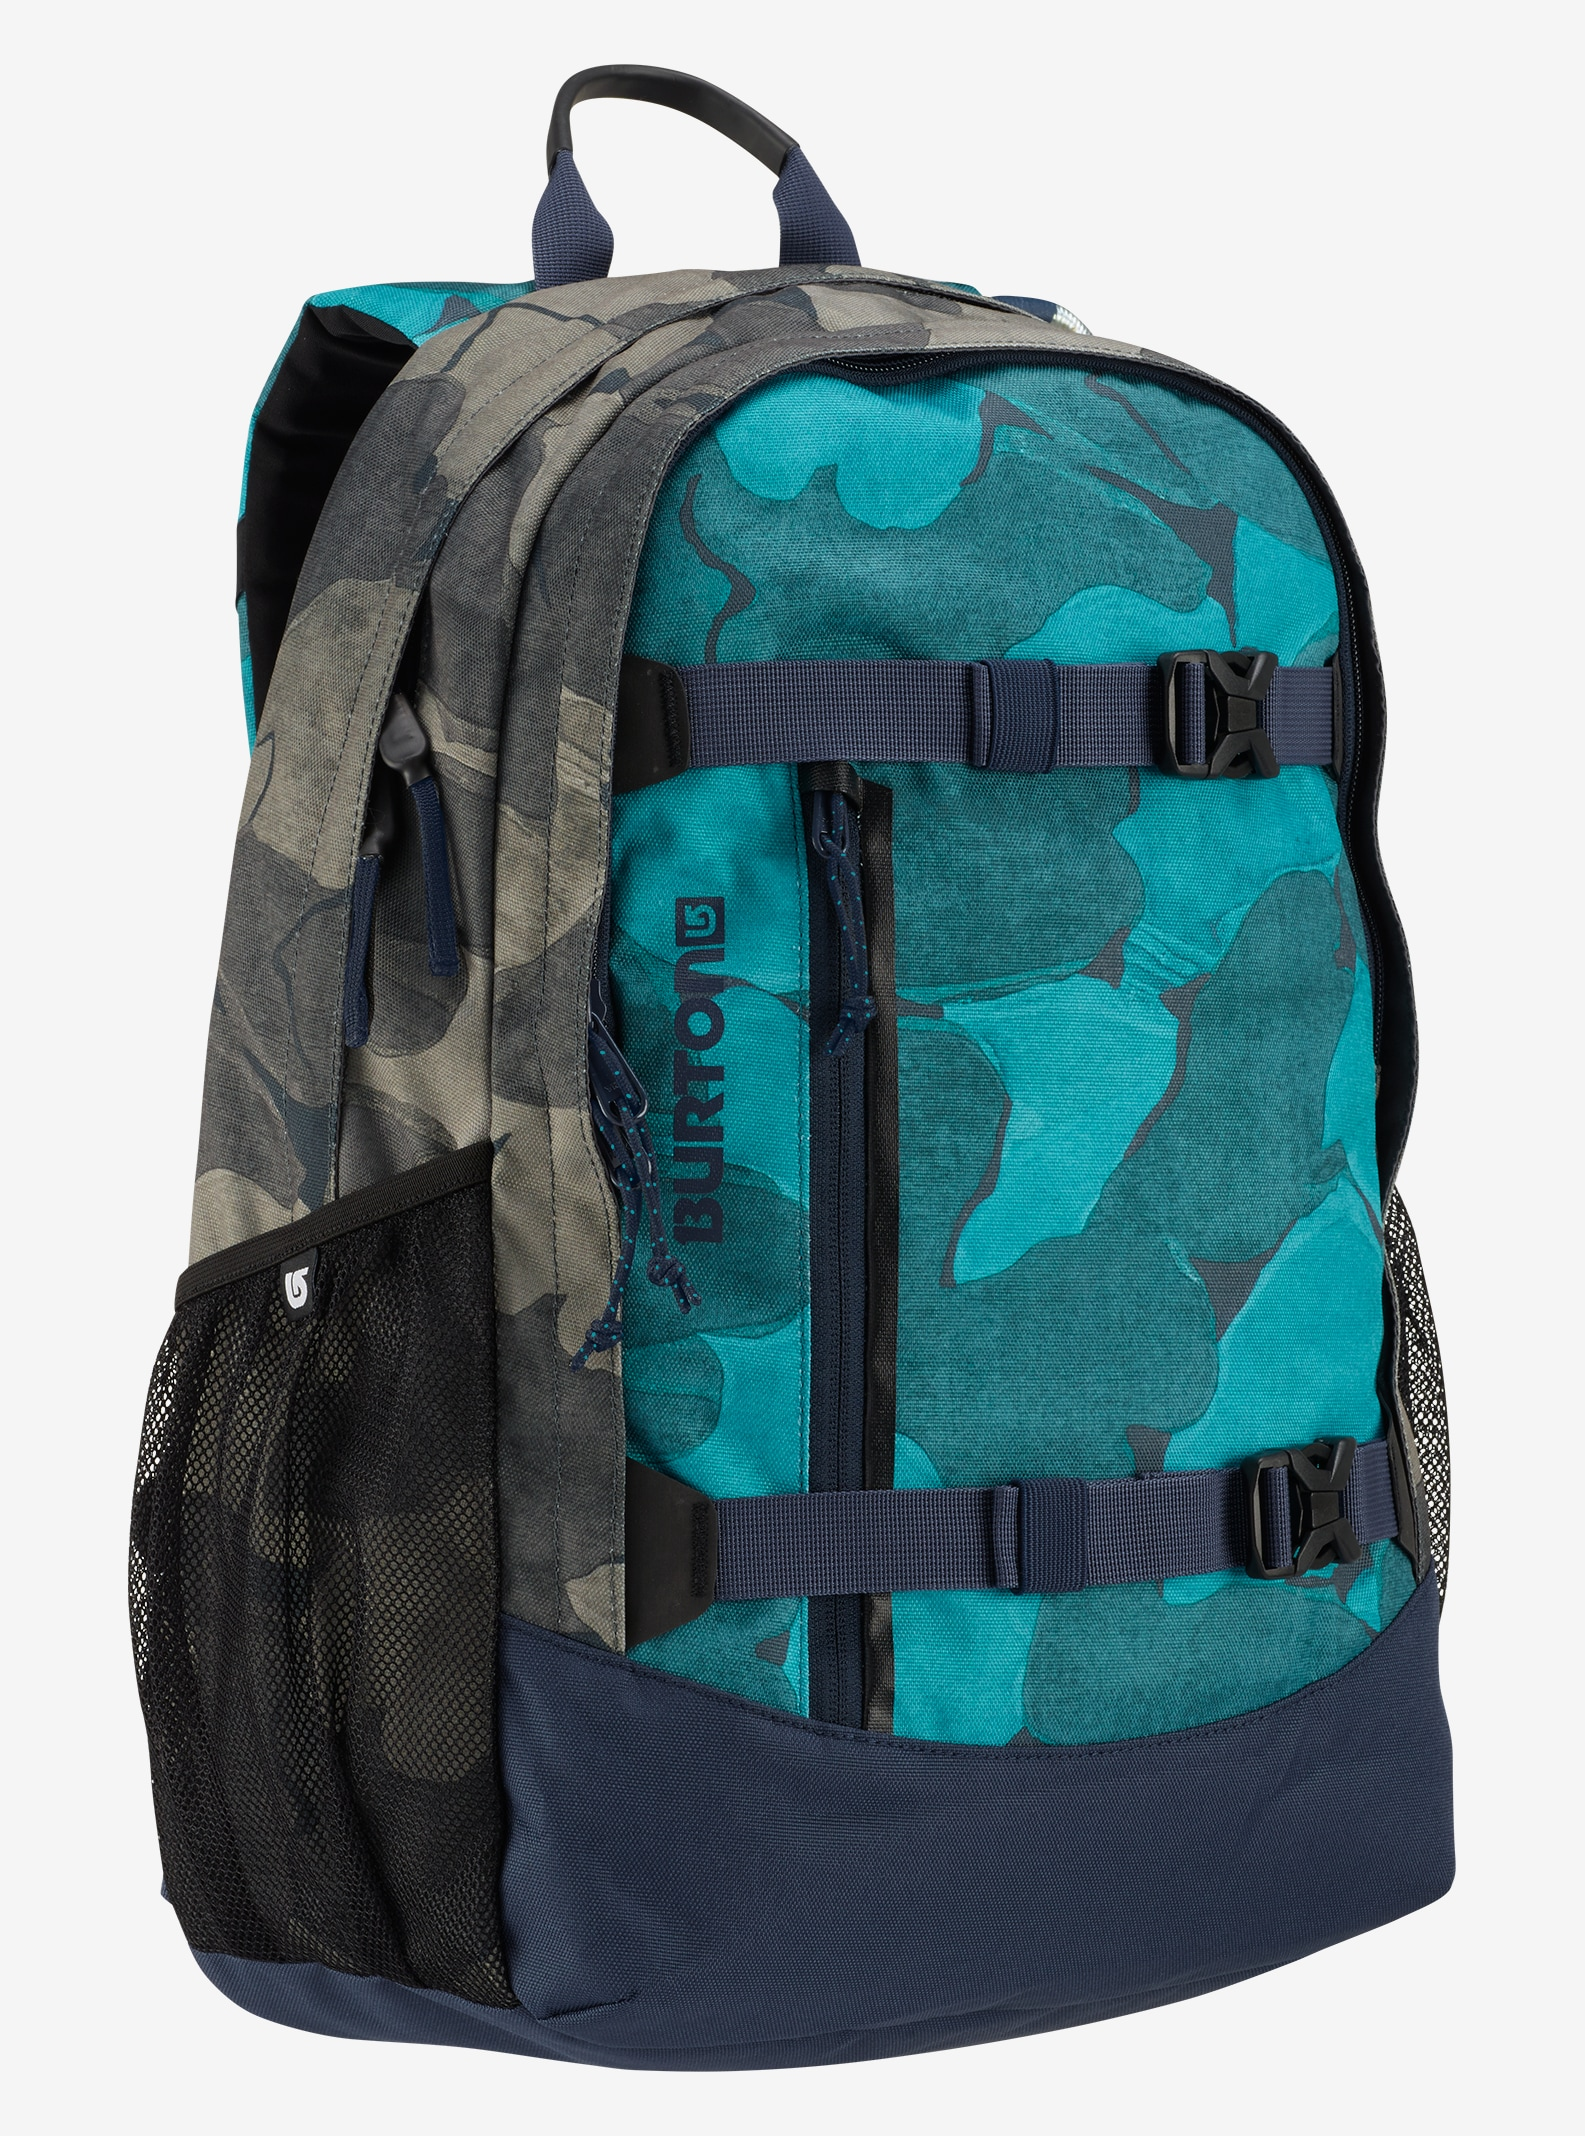 Burton Women's Day Hiker 25L Backpack shown in Pond Camo Print